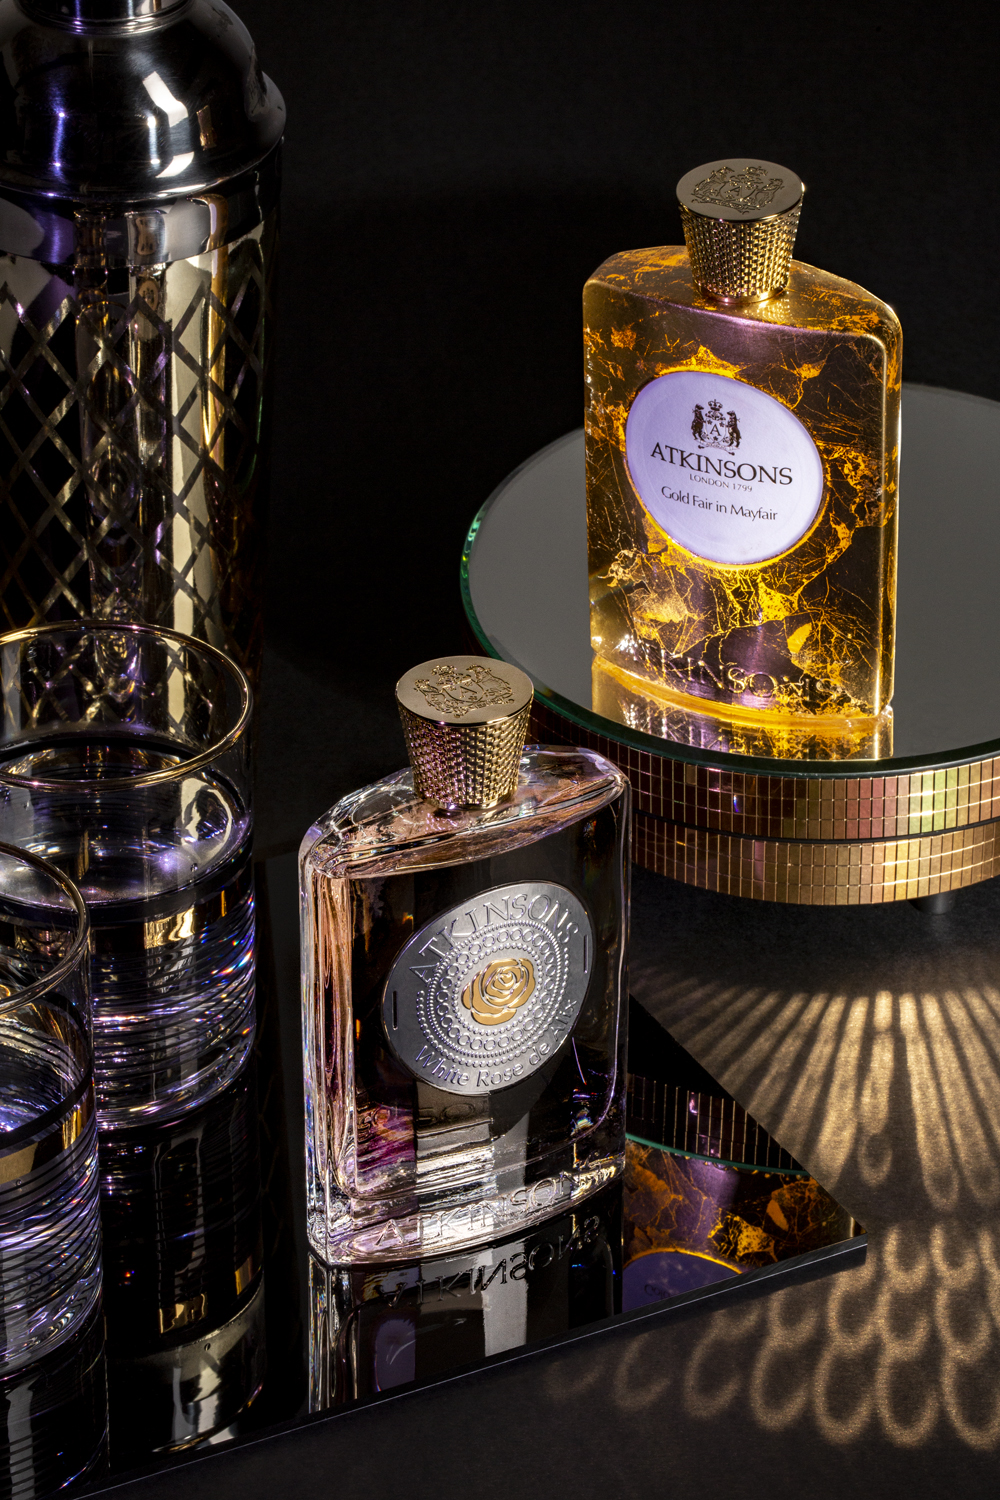 Atkinsons White Rose de Alix, Atkinsons Gold Fair in Mayfair